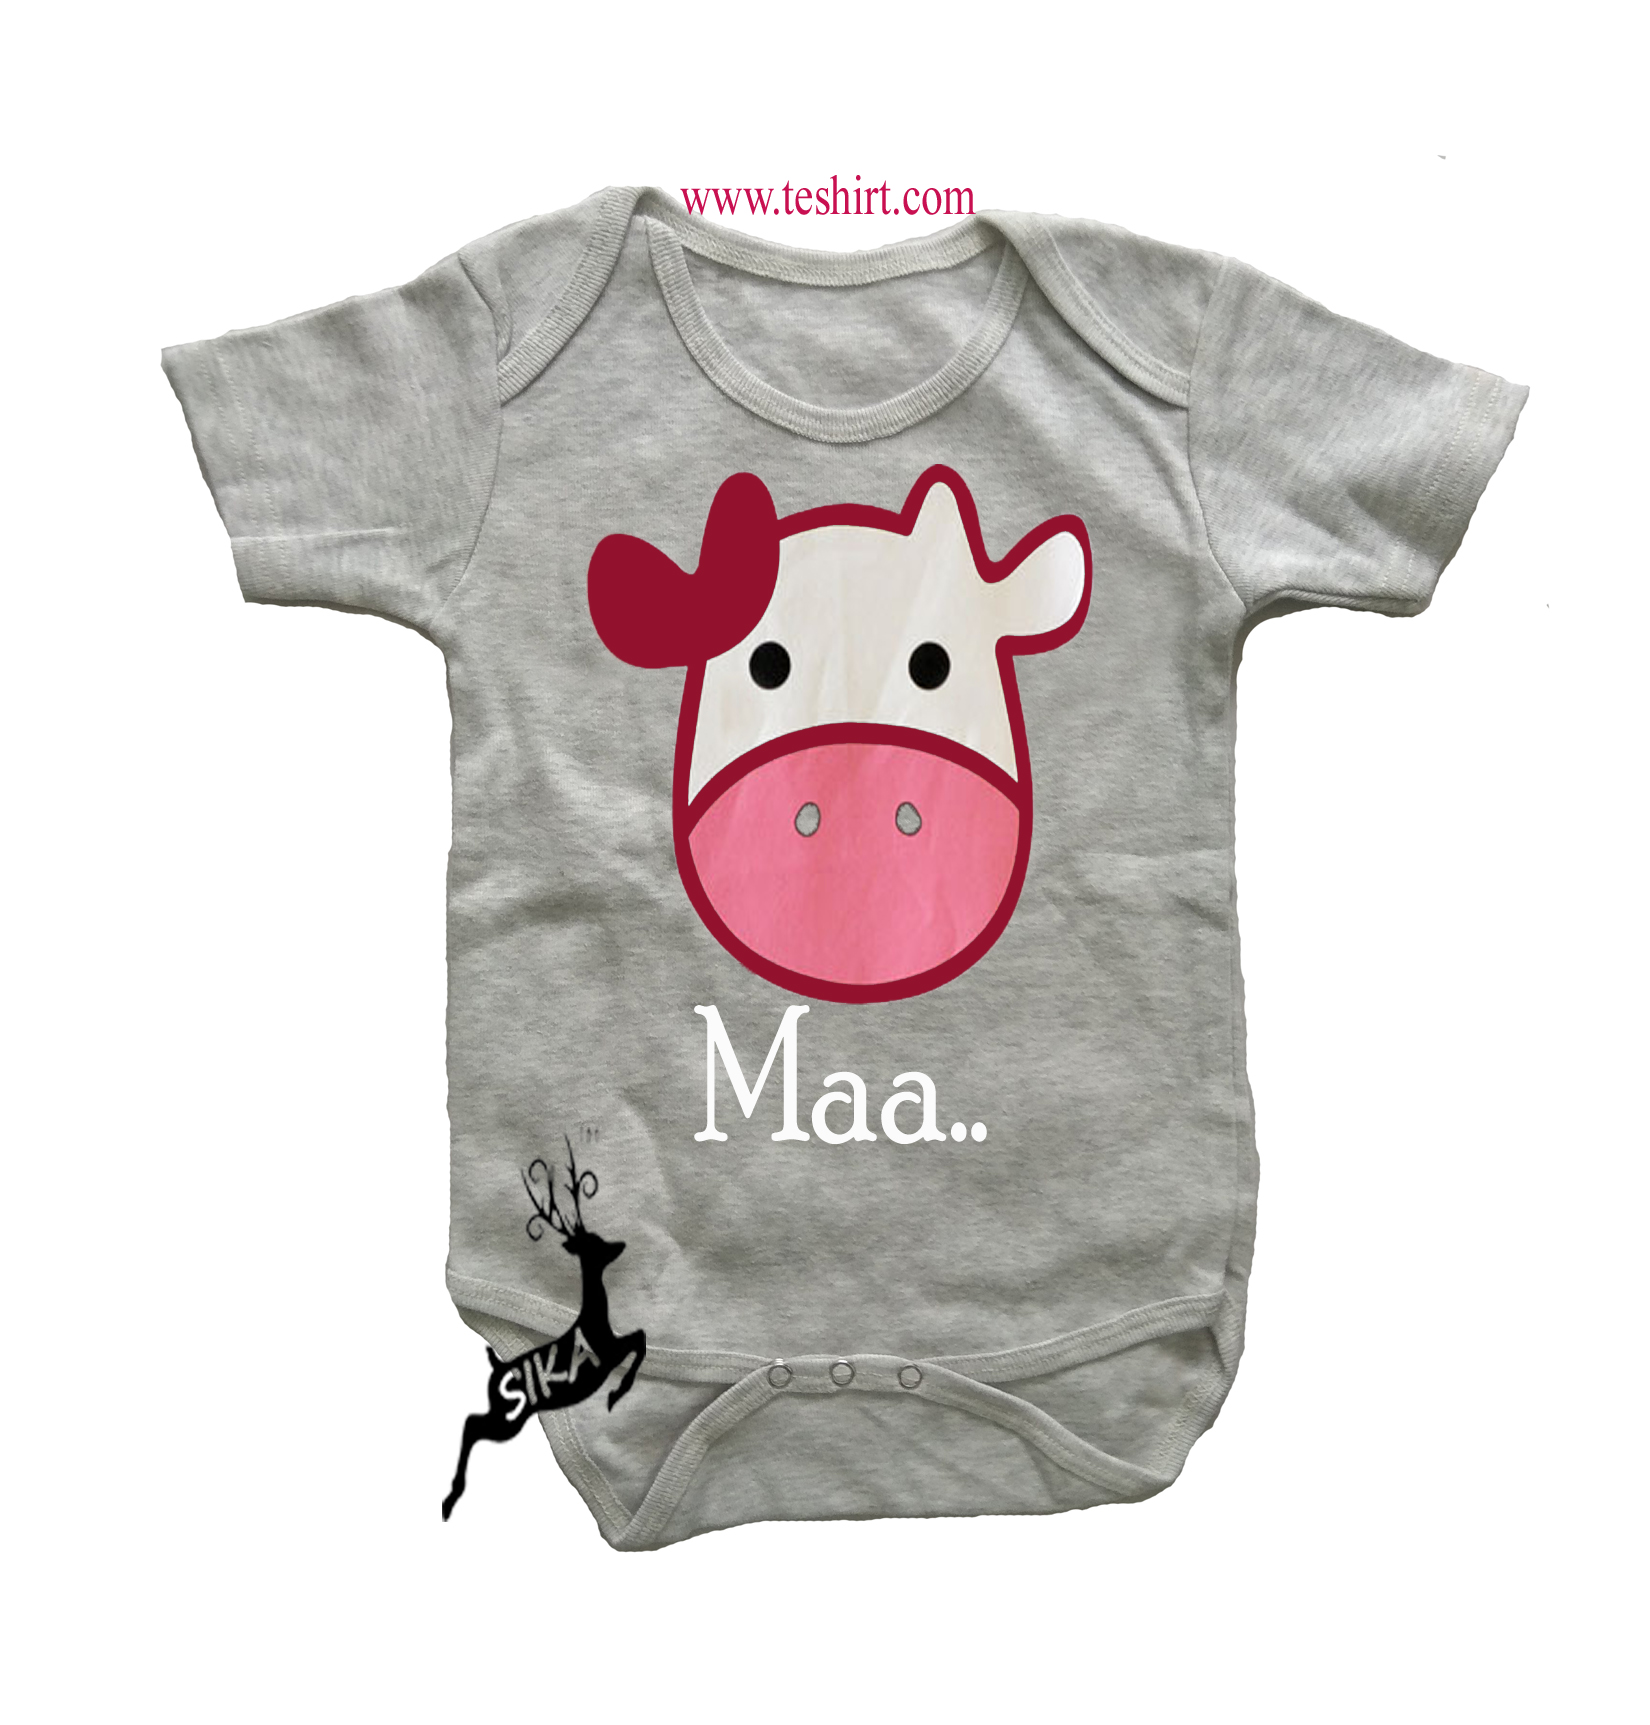 847b55e62 Baby Baba Suits